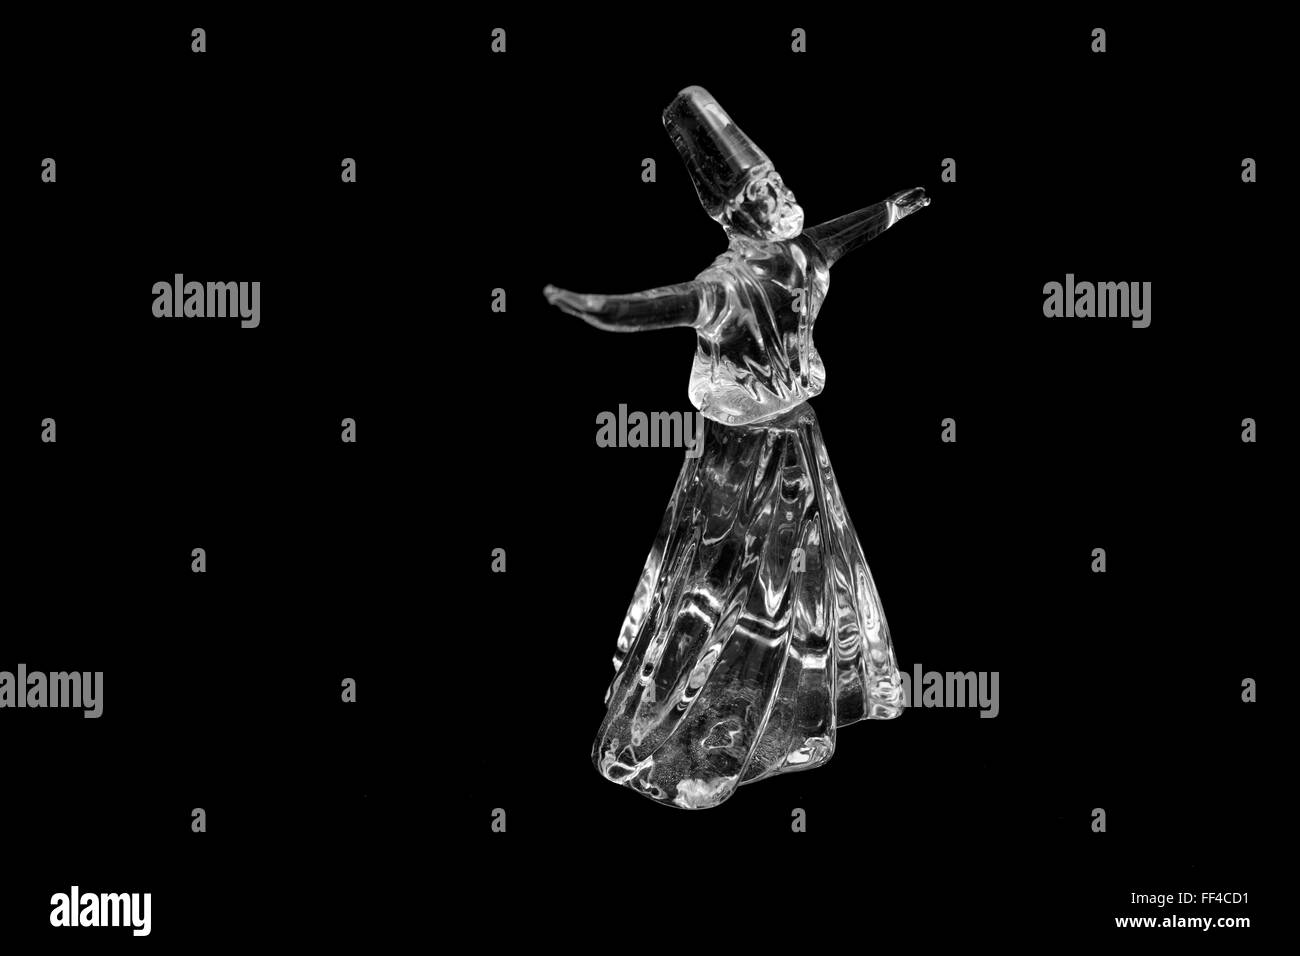 Whirling dervish isolated on black background - Stock Image